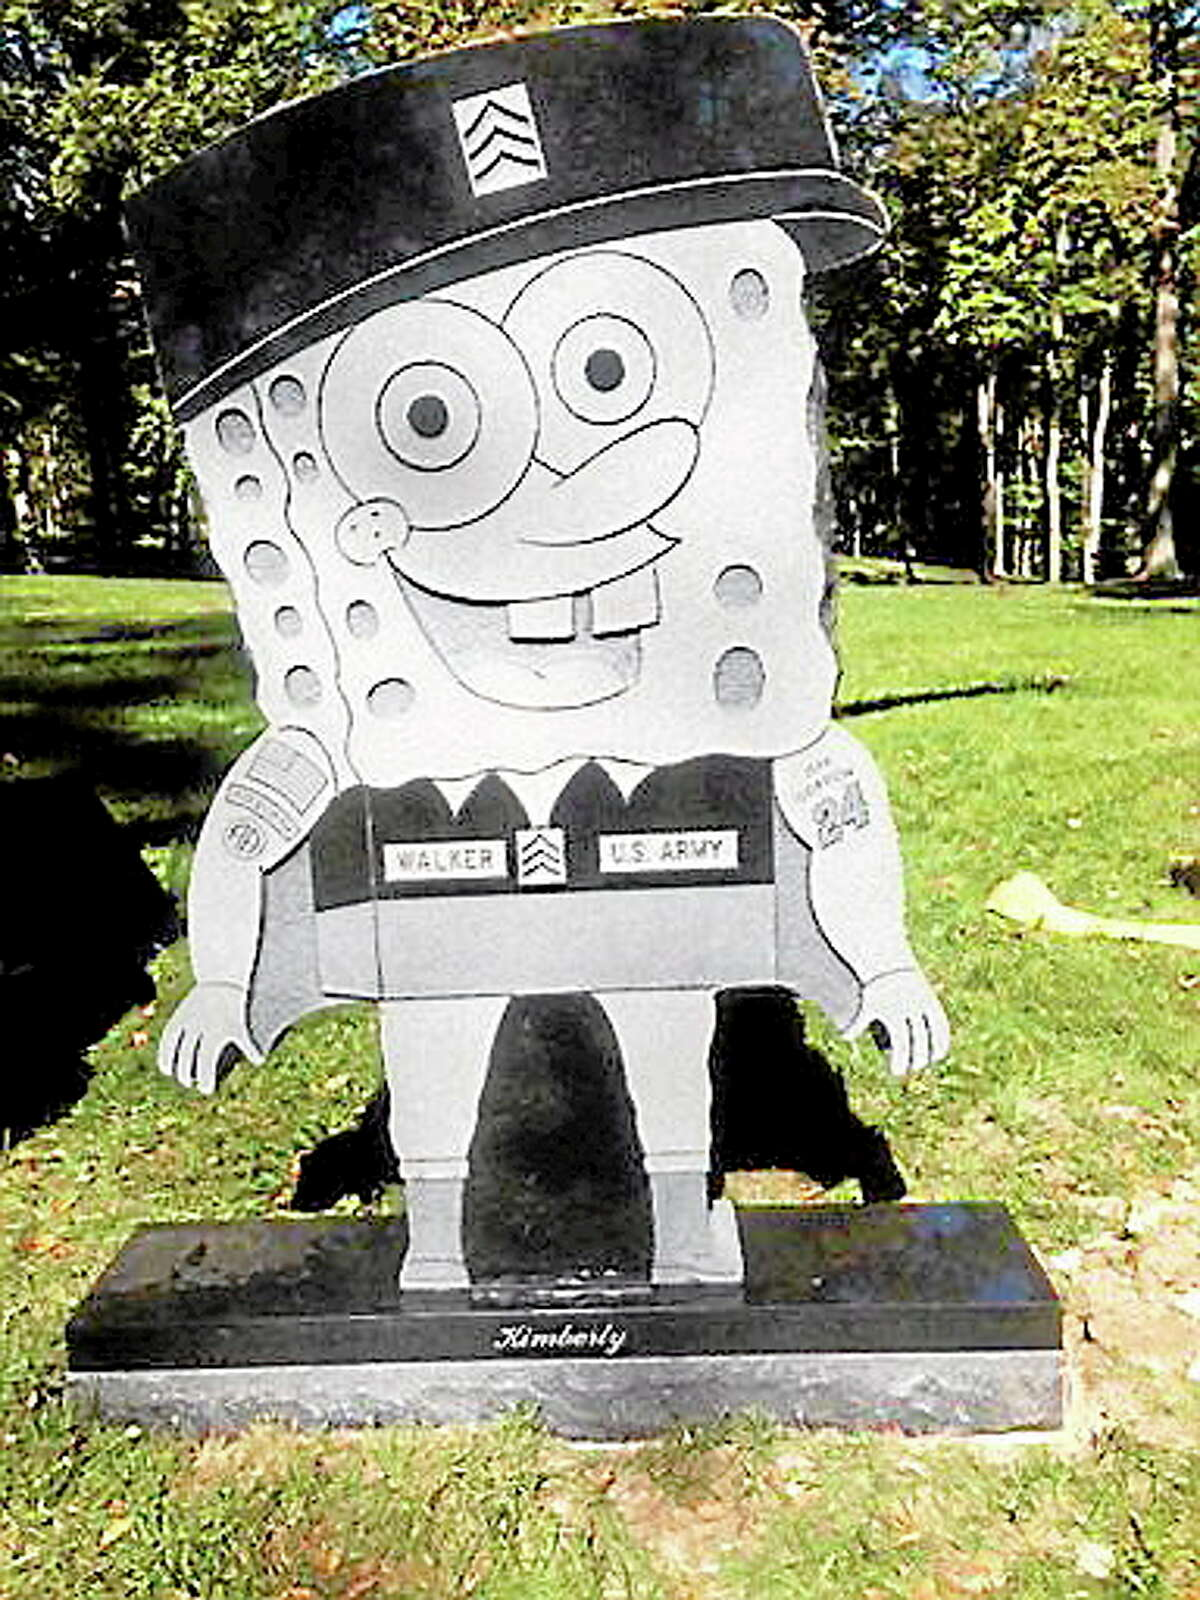 In this Thursday, Oct. 10, 2013, photo provided by the family of Kimberly Walker, shows Walker's gravestone in the likeness of popular cartoon character SpongeBob SquarePants. Despite getting prior approval for the gravestone from Spring Grove Cemetery in Cincinnati, the cemetery recently removed it, saying it did not fit in with the character of the historic and picturesque cemetery. (AP Photo/Kara Walker)